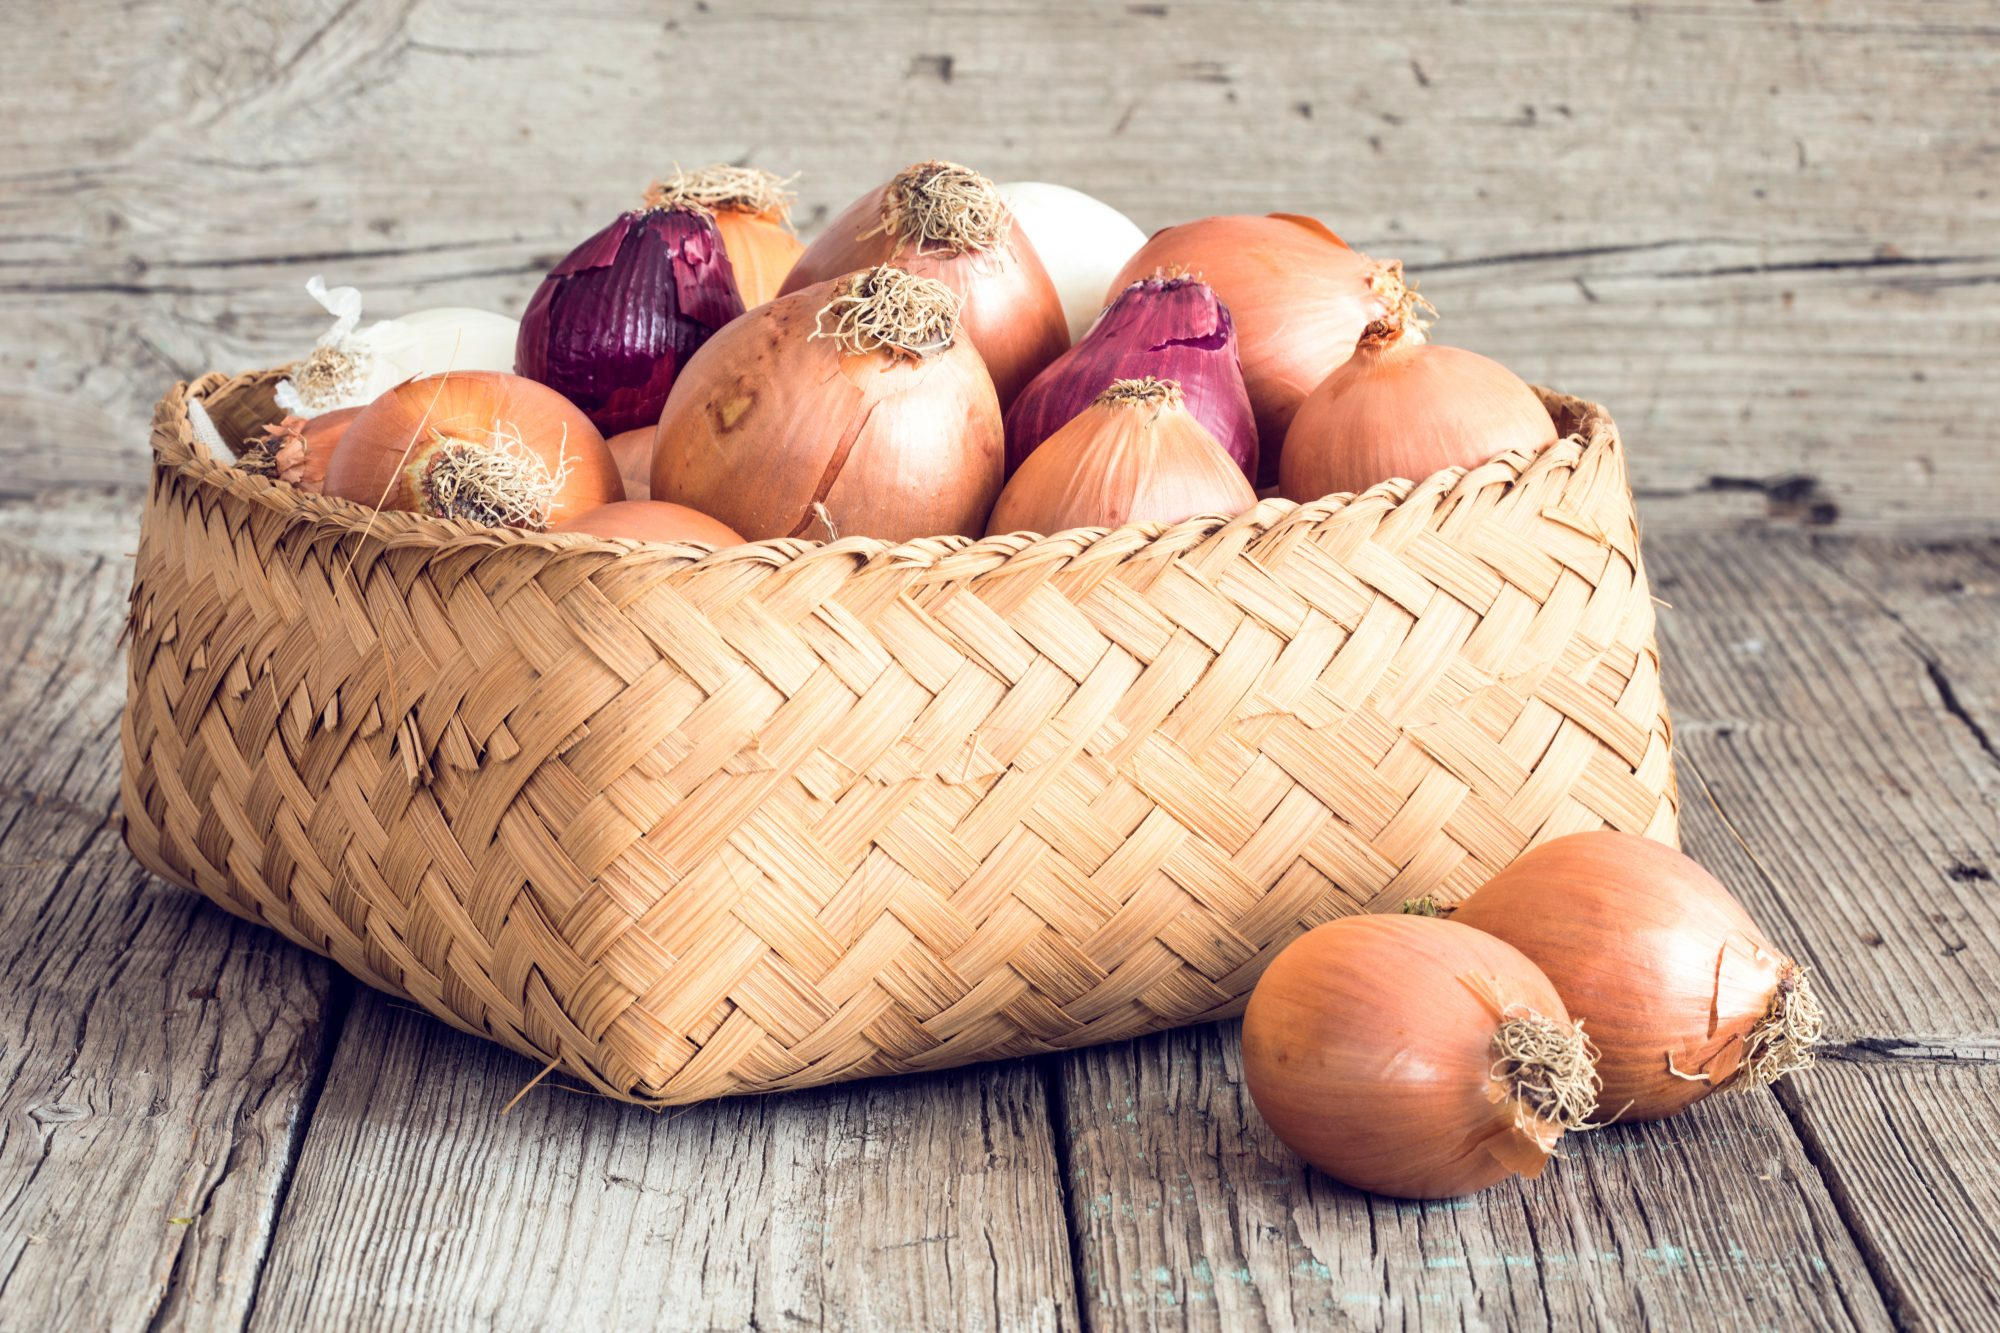 whole raw onions in whicker basket on wood surface